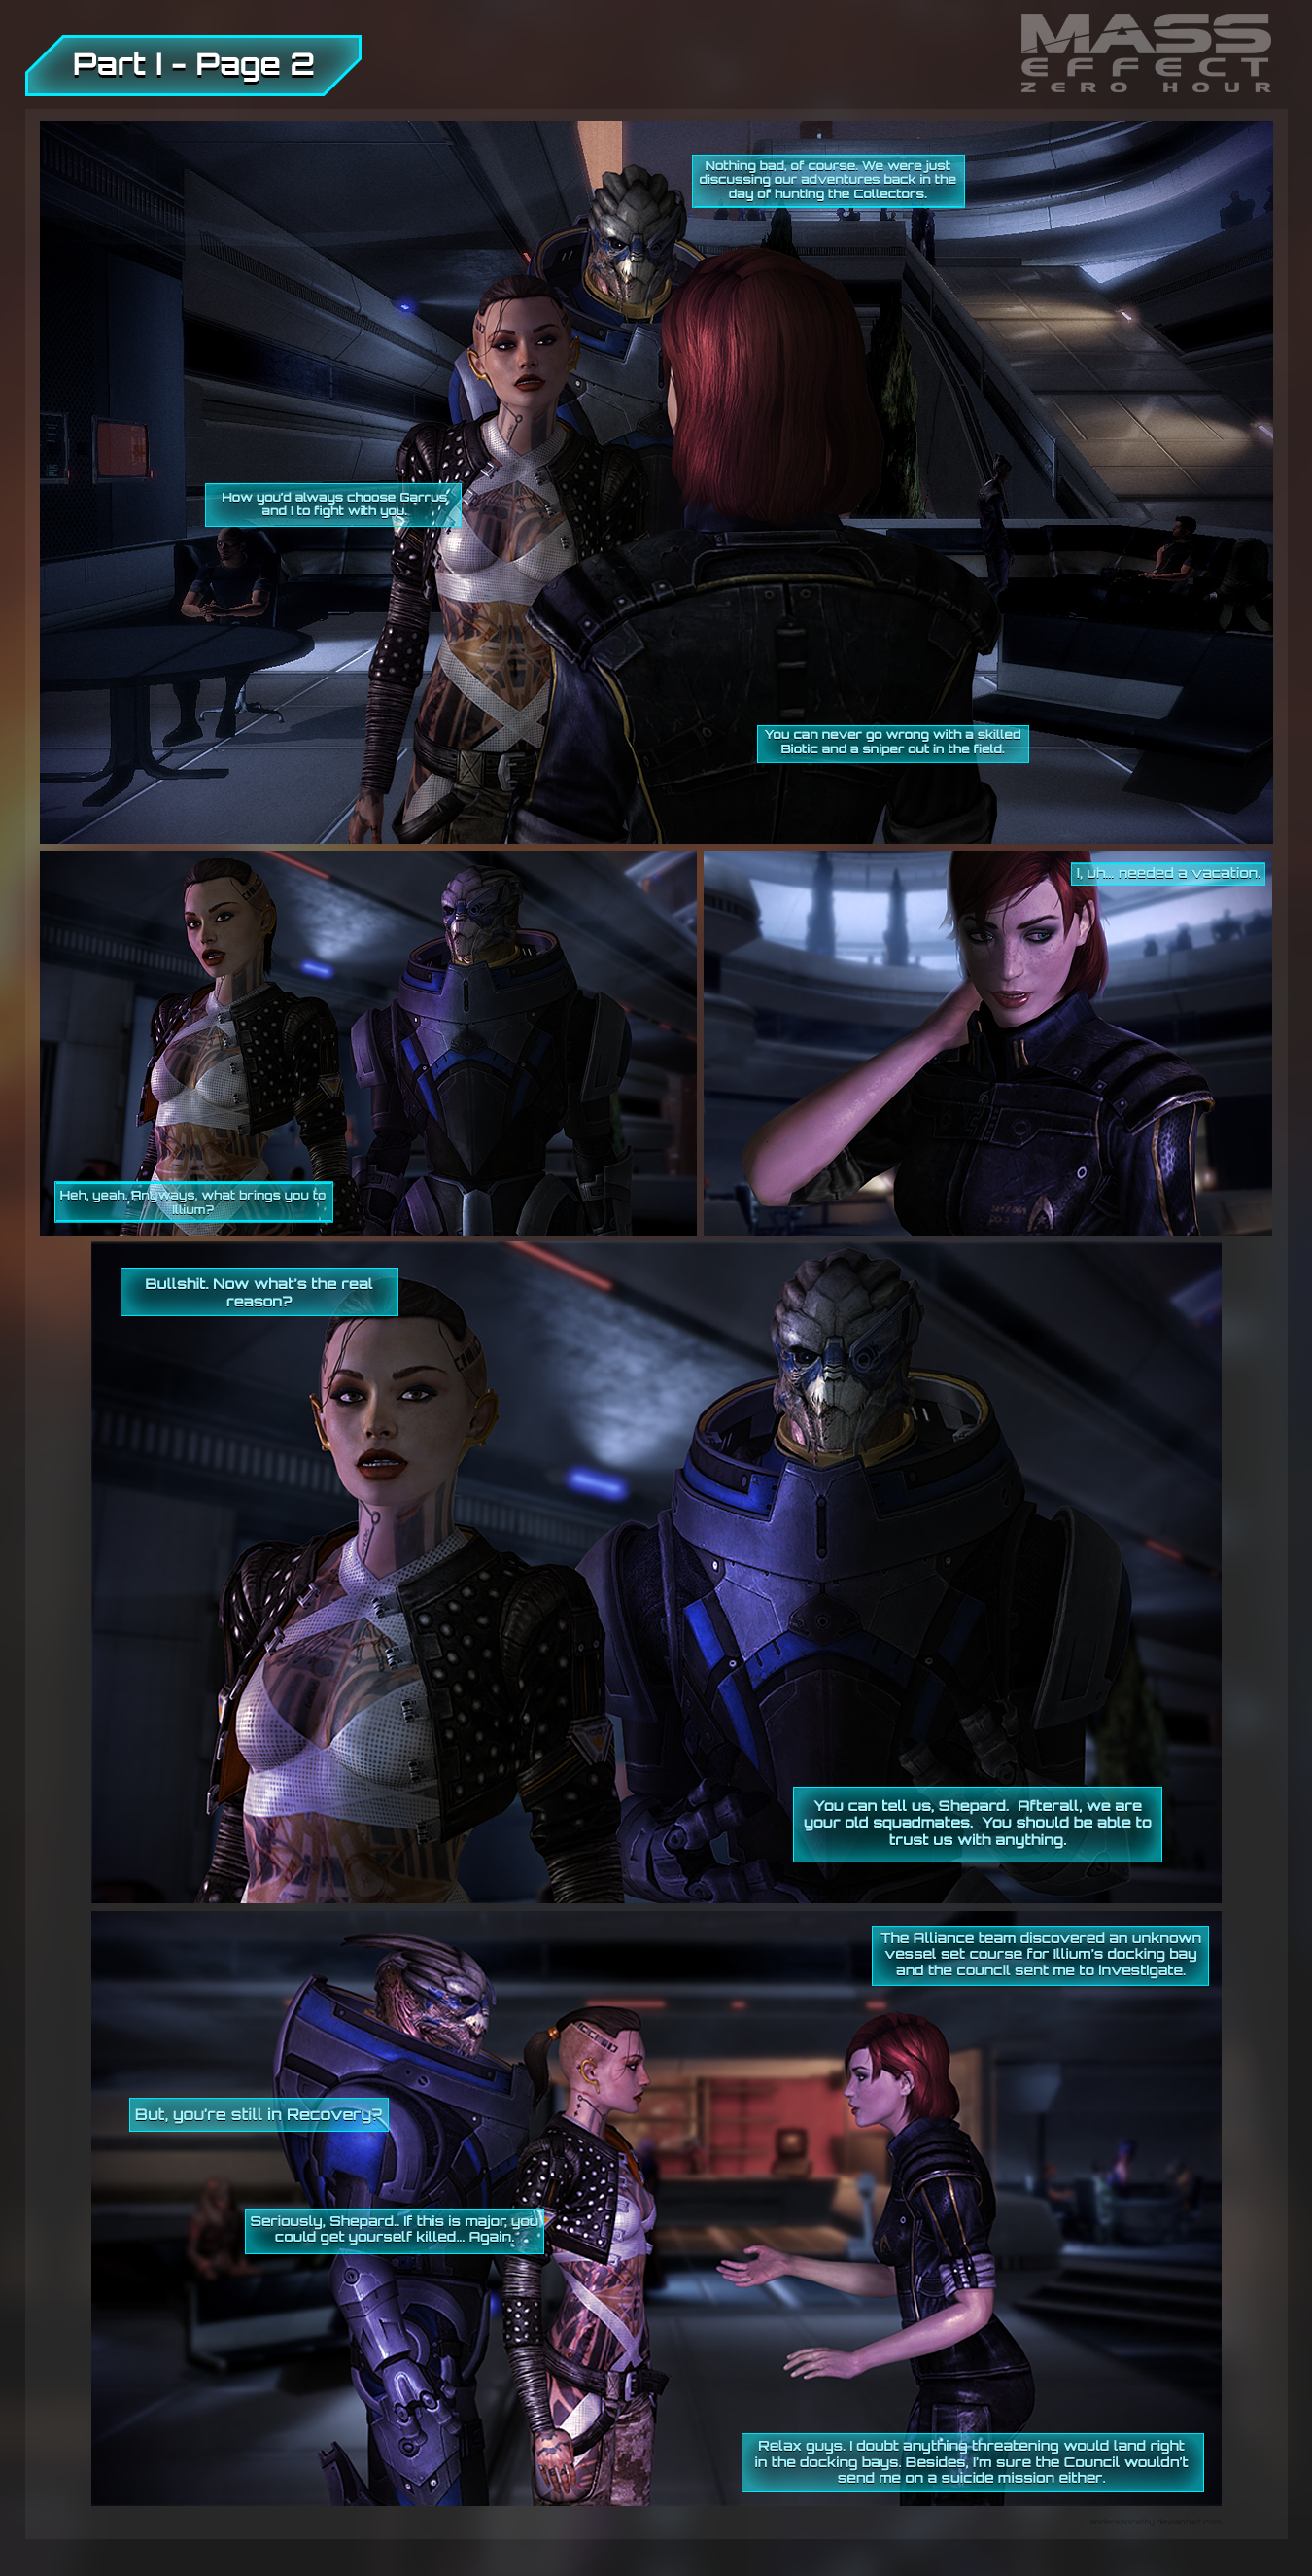 Mass Effect: Zero Hour - Part I Page 2 by andersoncathy